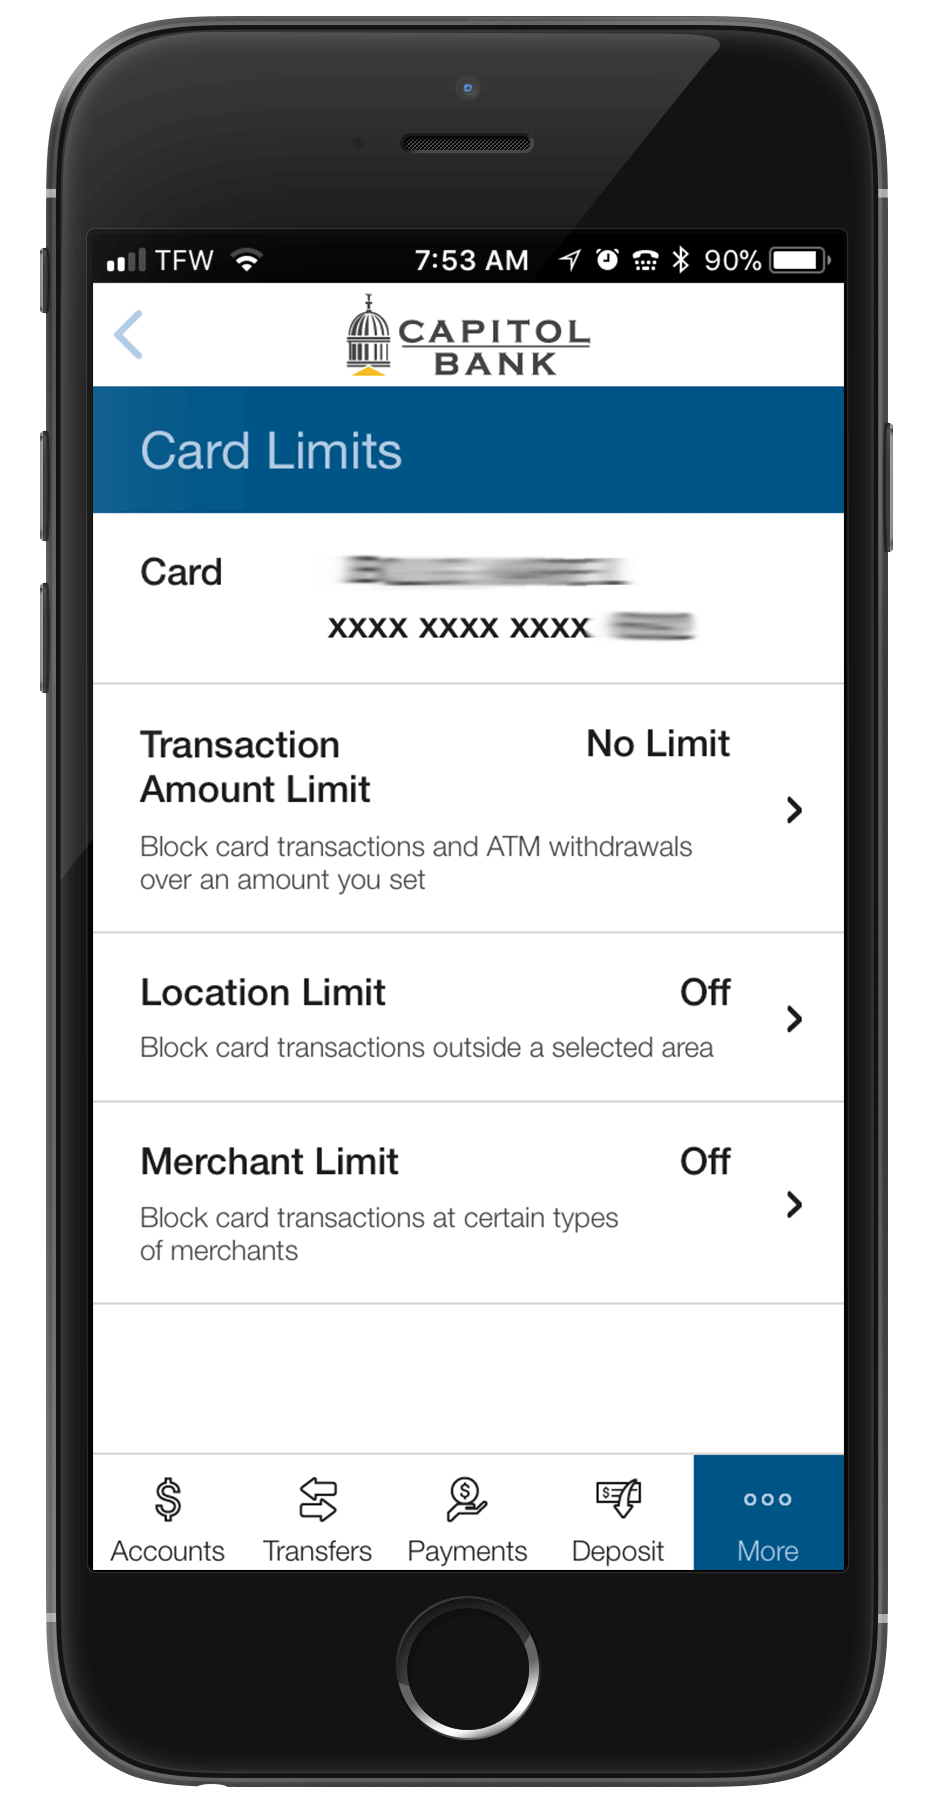 Manage Card Limits through Capitol Bank Mobile Banking